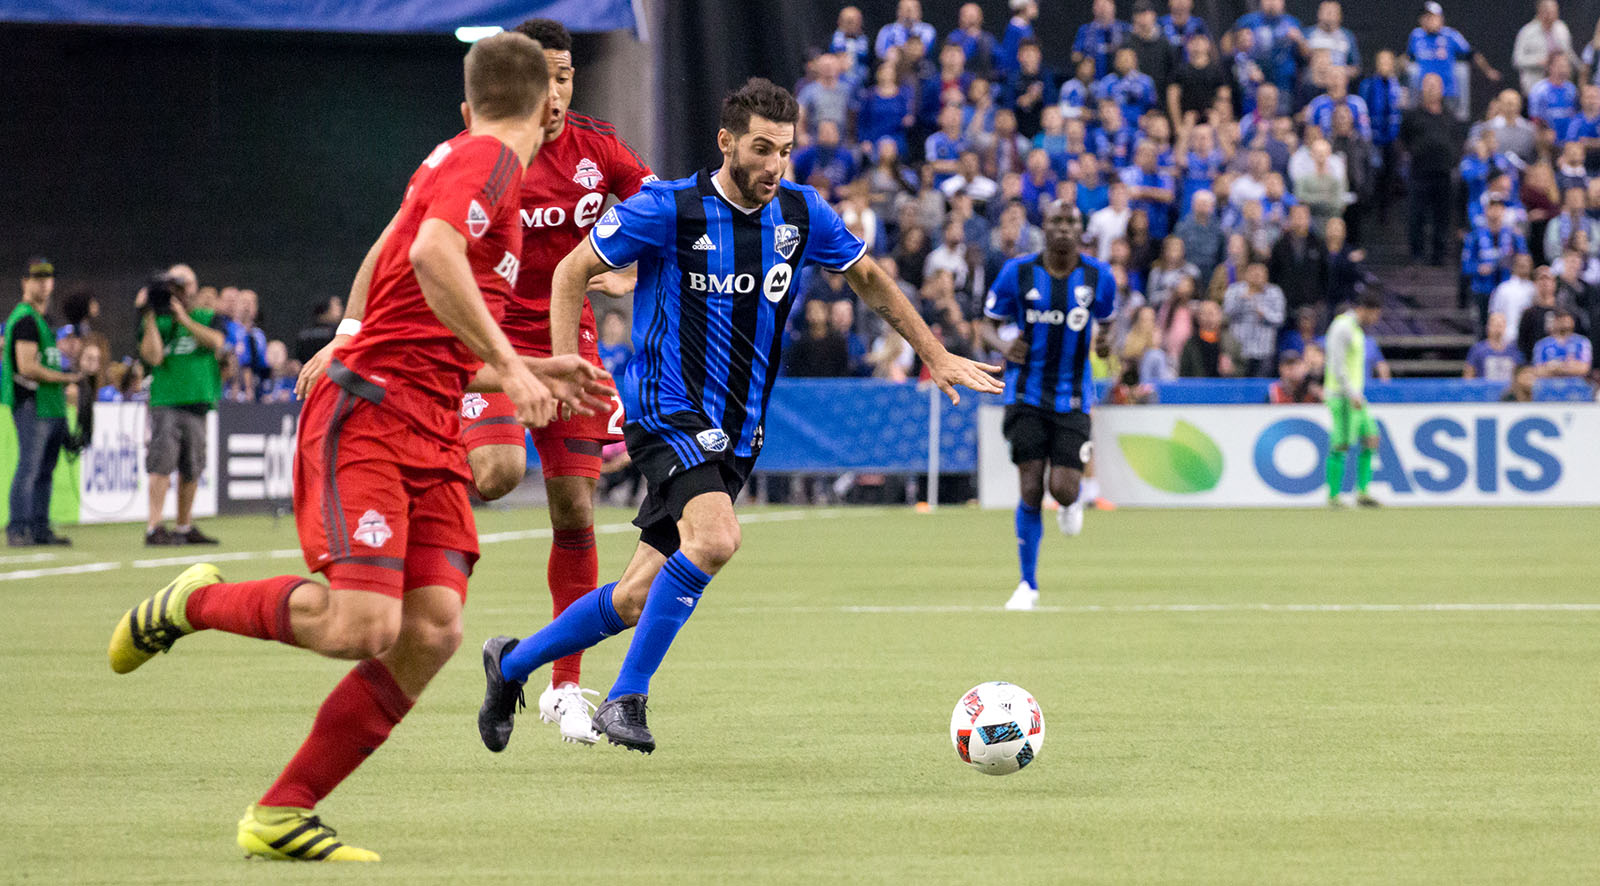 The Montreal Impact trying to make a place into space during a MLS Cup playoff match.